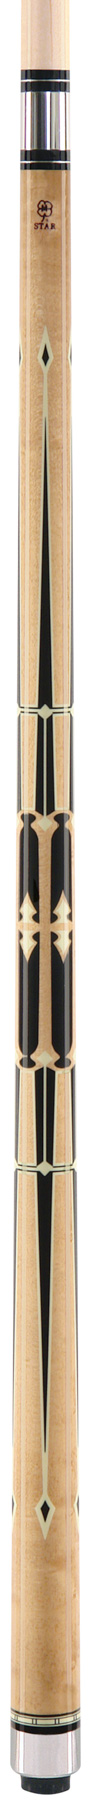 s63 Star Pool Cue by McDermott